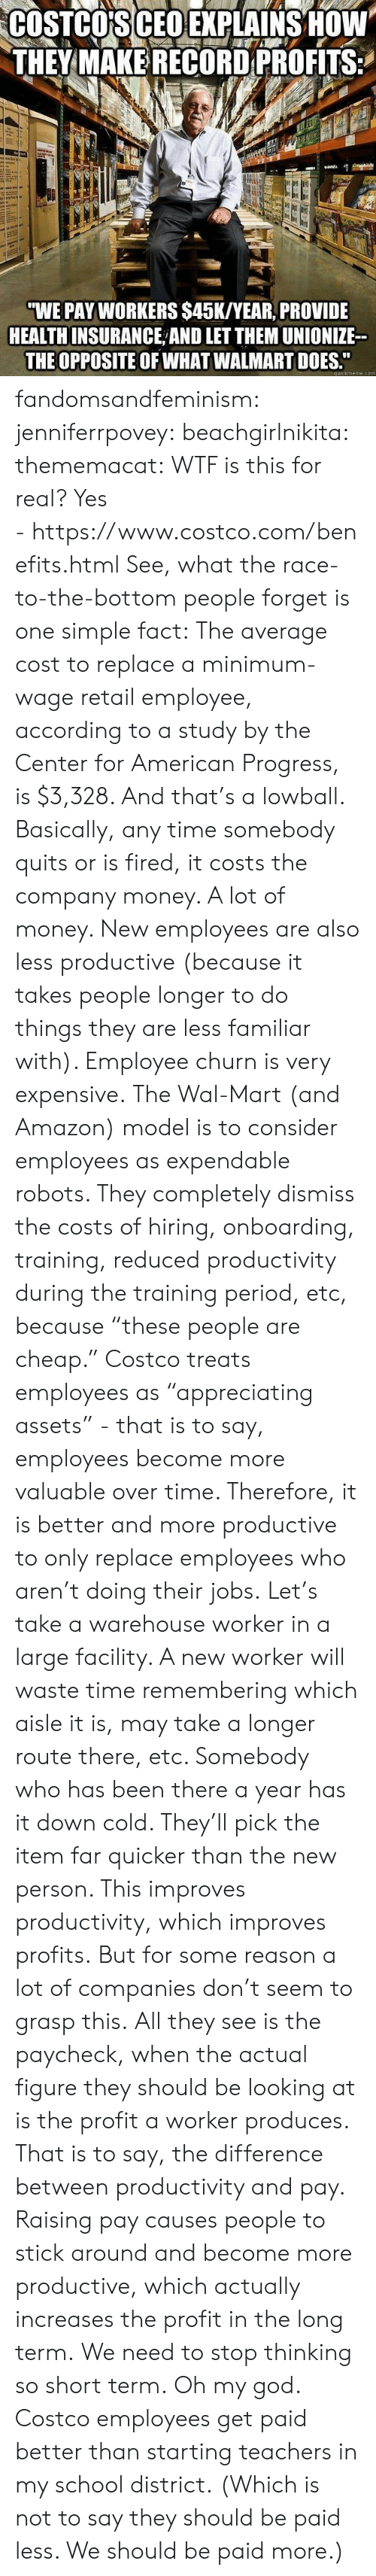 "Amazon, Costco, and God: COSTCO'S CEO EXPLAINS HOW  THEY MAKE RECORD PROFITS  ""WE PAY WORKERS $45K/YEAR, PROVIDE  HEALTH INSURANCE AND LET THEM UNIONIZE  THE OPPOSITE OF WHAT WALMART DOES.""  quickmeme.com fandomsandfeminism:  jenniferrpovey:  beachgirlnikita:  thememacat: WTF is this for real? Yes - https://www.costco.com/benefits.html  See, what the race-to-the-bottom people forget is one simple fact: The average cost to replace a minimum-wage retail employee, according to a study by the Center for American Progress, is $3,328. And that's a lowball. Basically, any time somebody quits or is fired, it costs the company money. A lot of money. New employees are also less productive (because it takes people longer to do things they are less familiar with). Employee churn is very expensive. The Wal-Mart (and Amazon) model is to consider employees as expendable robots. They completely dismiss the costs of hiring, onboarding, training, reduced productivity during the training period, etc, because ""these people are cheap."" Costco treats employees as ""appreciating assets"" - that is to say, employees become more valuable over time. Therefore, it is better and more productive to only replace employees who aren't doing their jobs. Let's take a warehouse worker in a large facility. A new worker will waste time remembering which aisle it is, may take a longer route there, etc. Somebody who has been there a year has it down cold. They'll pick the item far quicker than the new person. This improves productivity, which improves profits. But for some reason a lot of companies don't seem to grasp this. All they see is the paycheck, when the actual figure they should be looking at is the profit a worker produces. That is to say, the difference between productivity and pay. Raising pay causes people to stick around and become more productive, which actually increases the profit in the long term. We need to stop thinking so short term.   Oh my god. Costco employees get paid better than starting teachers in my school district.  (Which is not to say they should be paid less. We should be paid more.)"